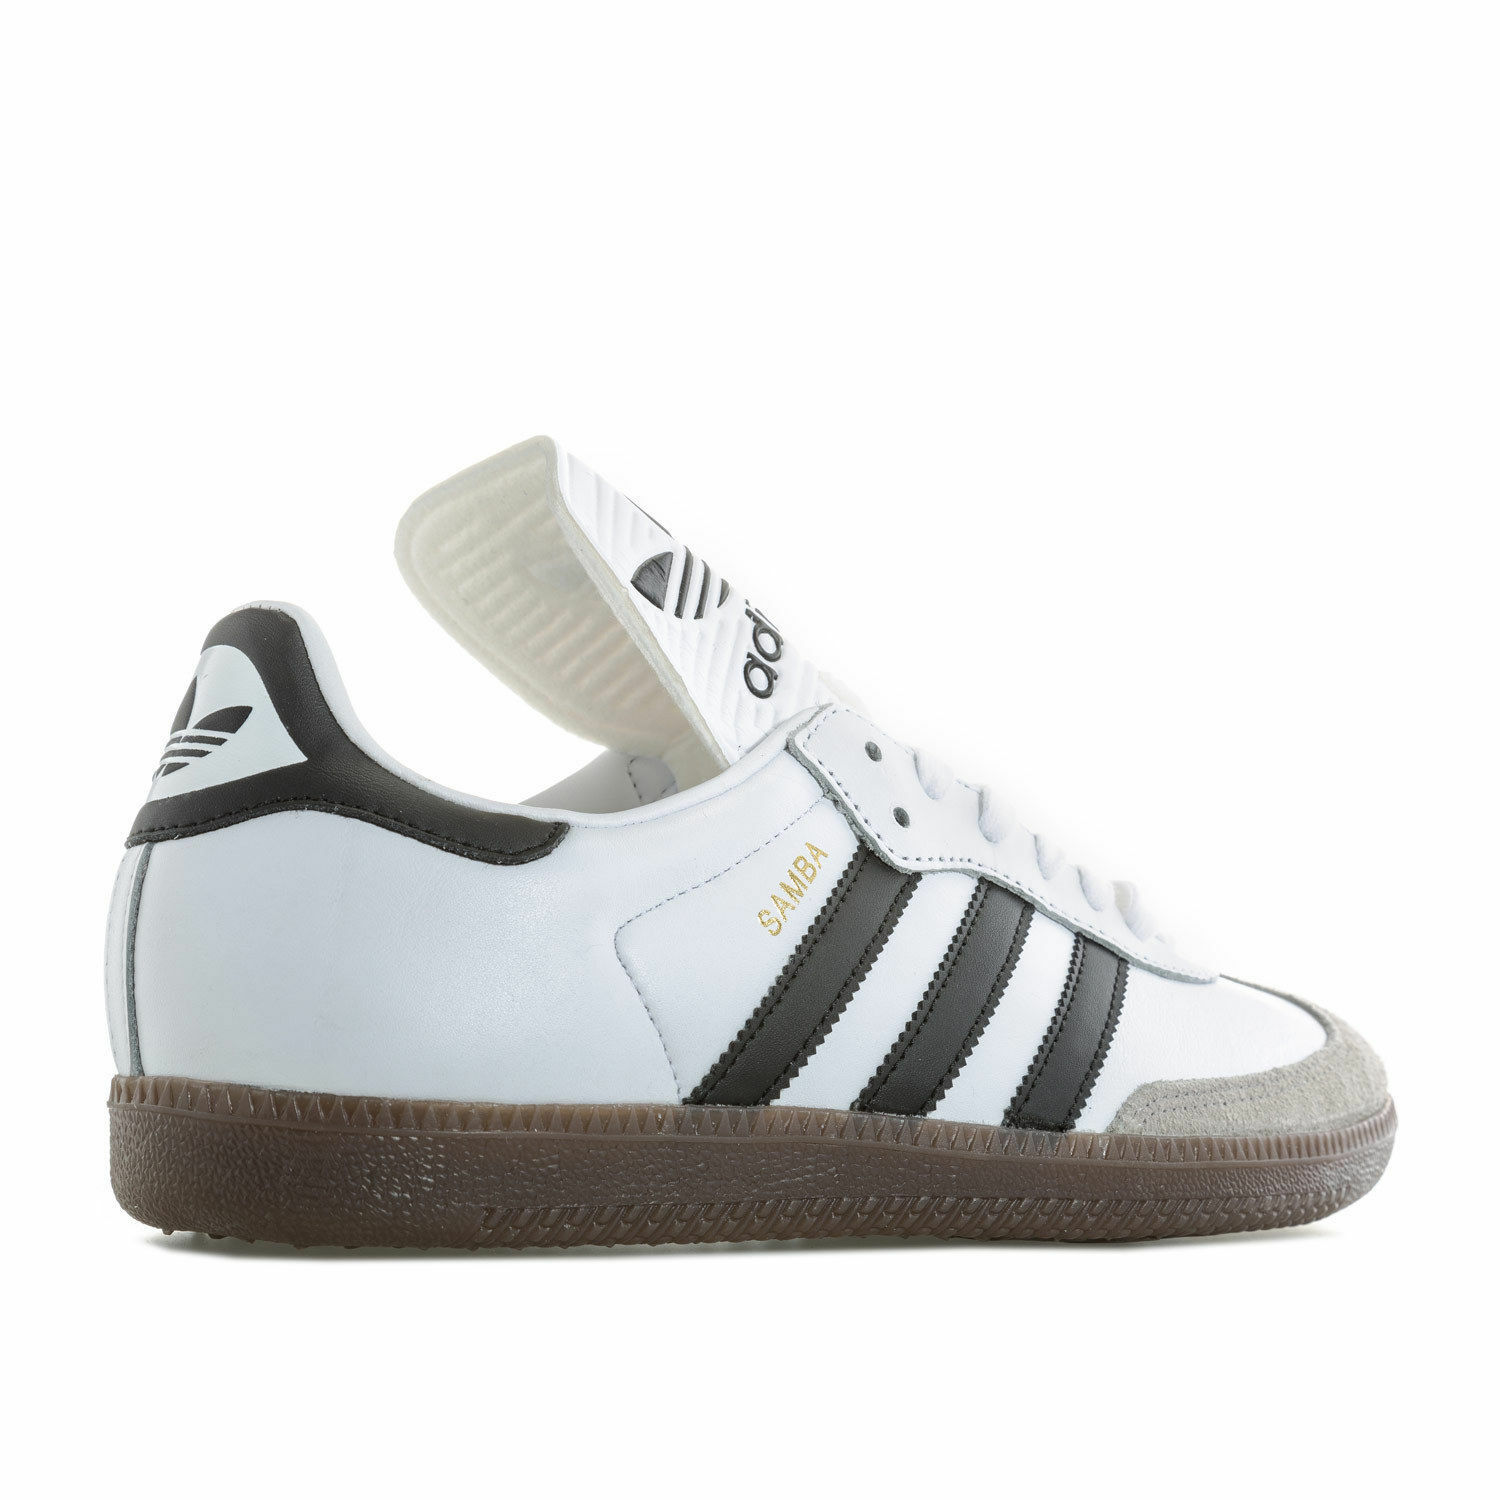 Mens Adidas Originals Samba Classic Classic Classic Og Trainers BZ0225 Leather made in Germany d3e957